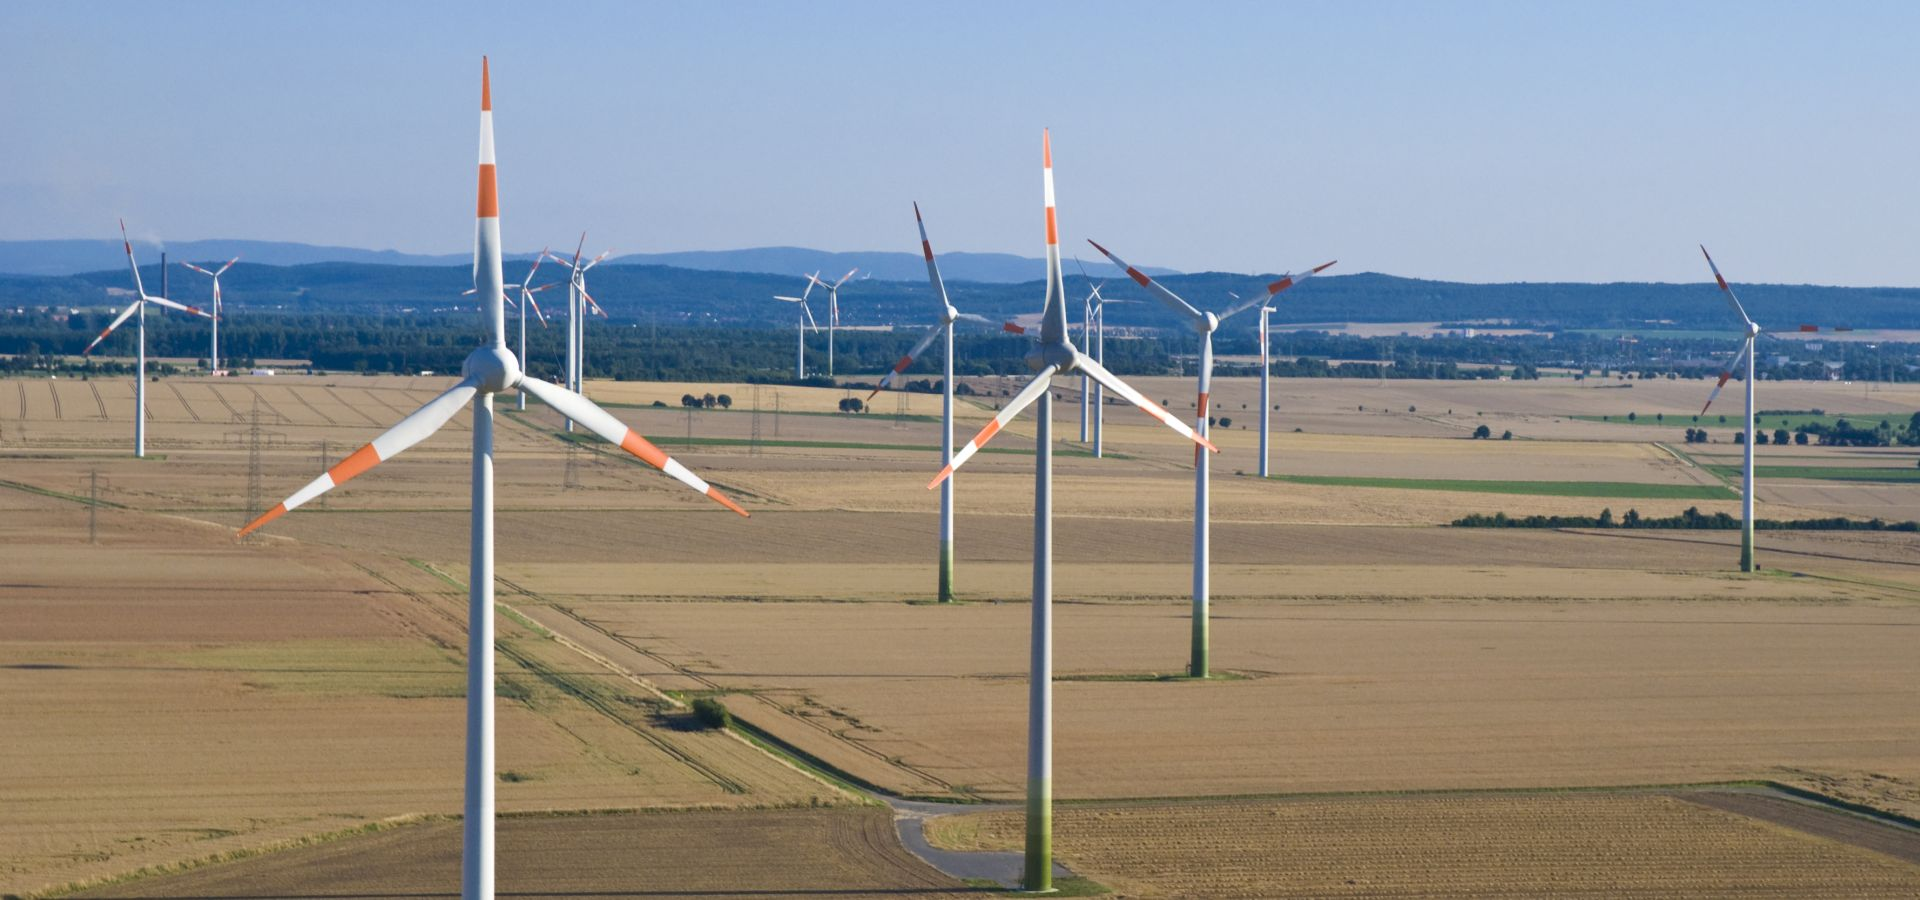 A onshore wind farm in Lower Saxony, Germany